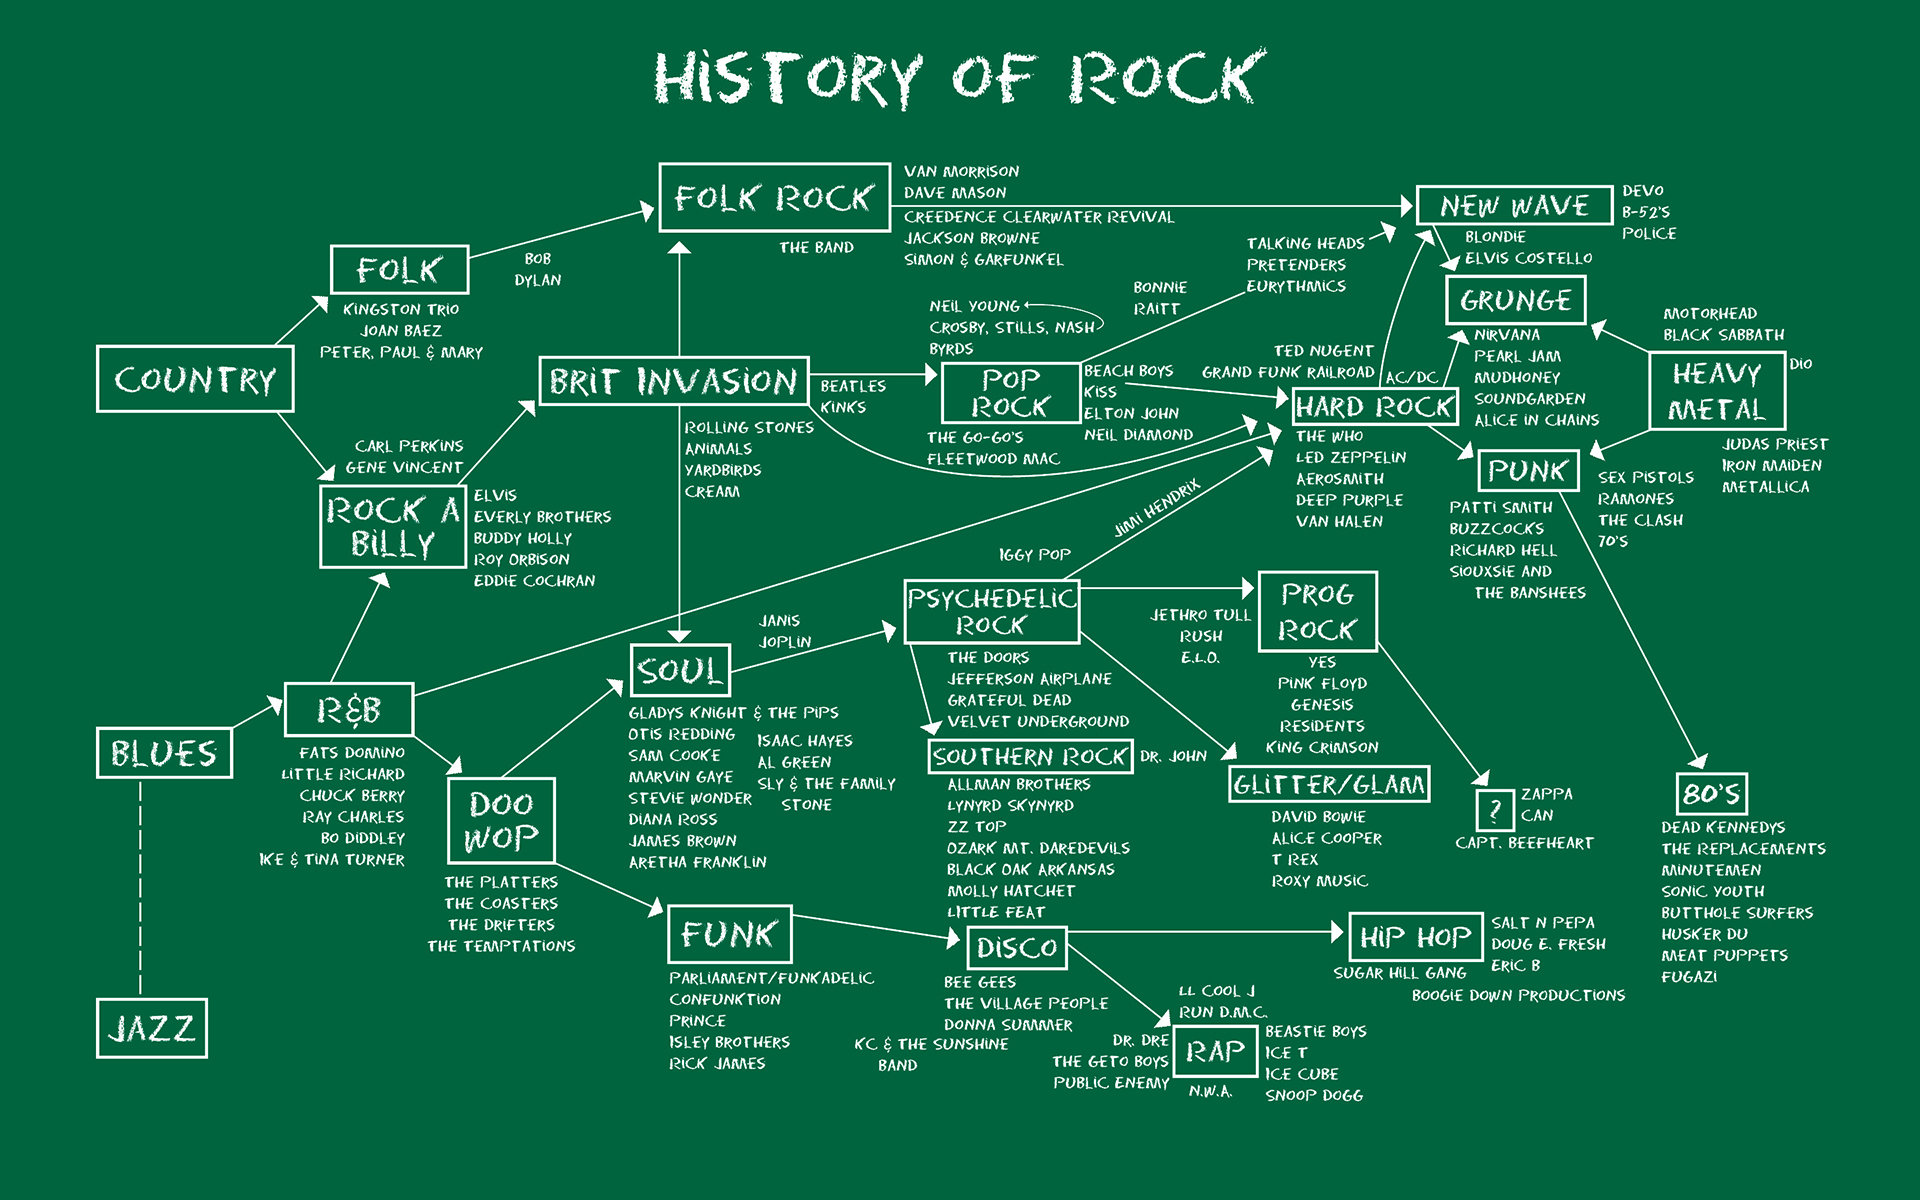 History-of-Rock-Chalkboard-16x10.jpg